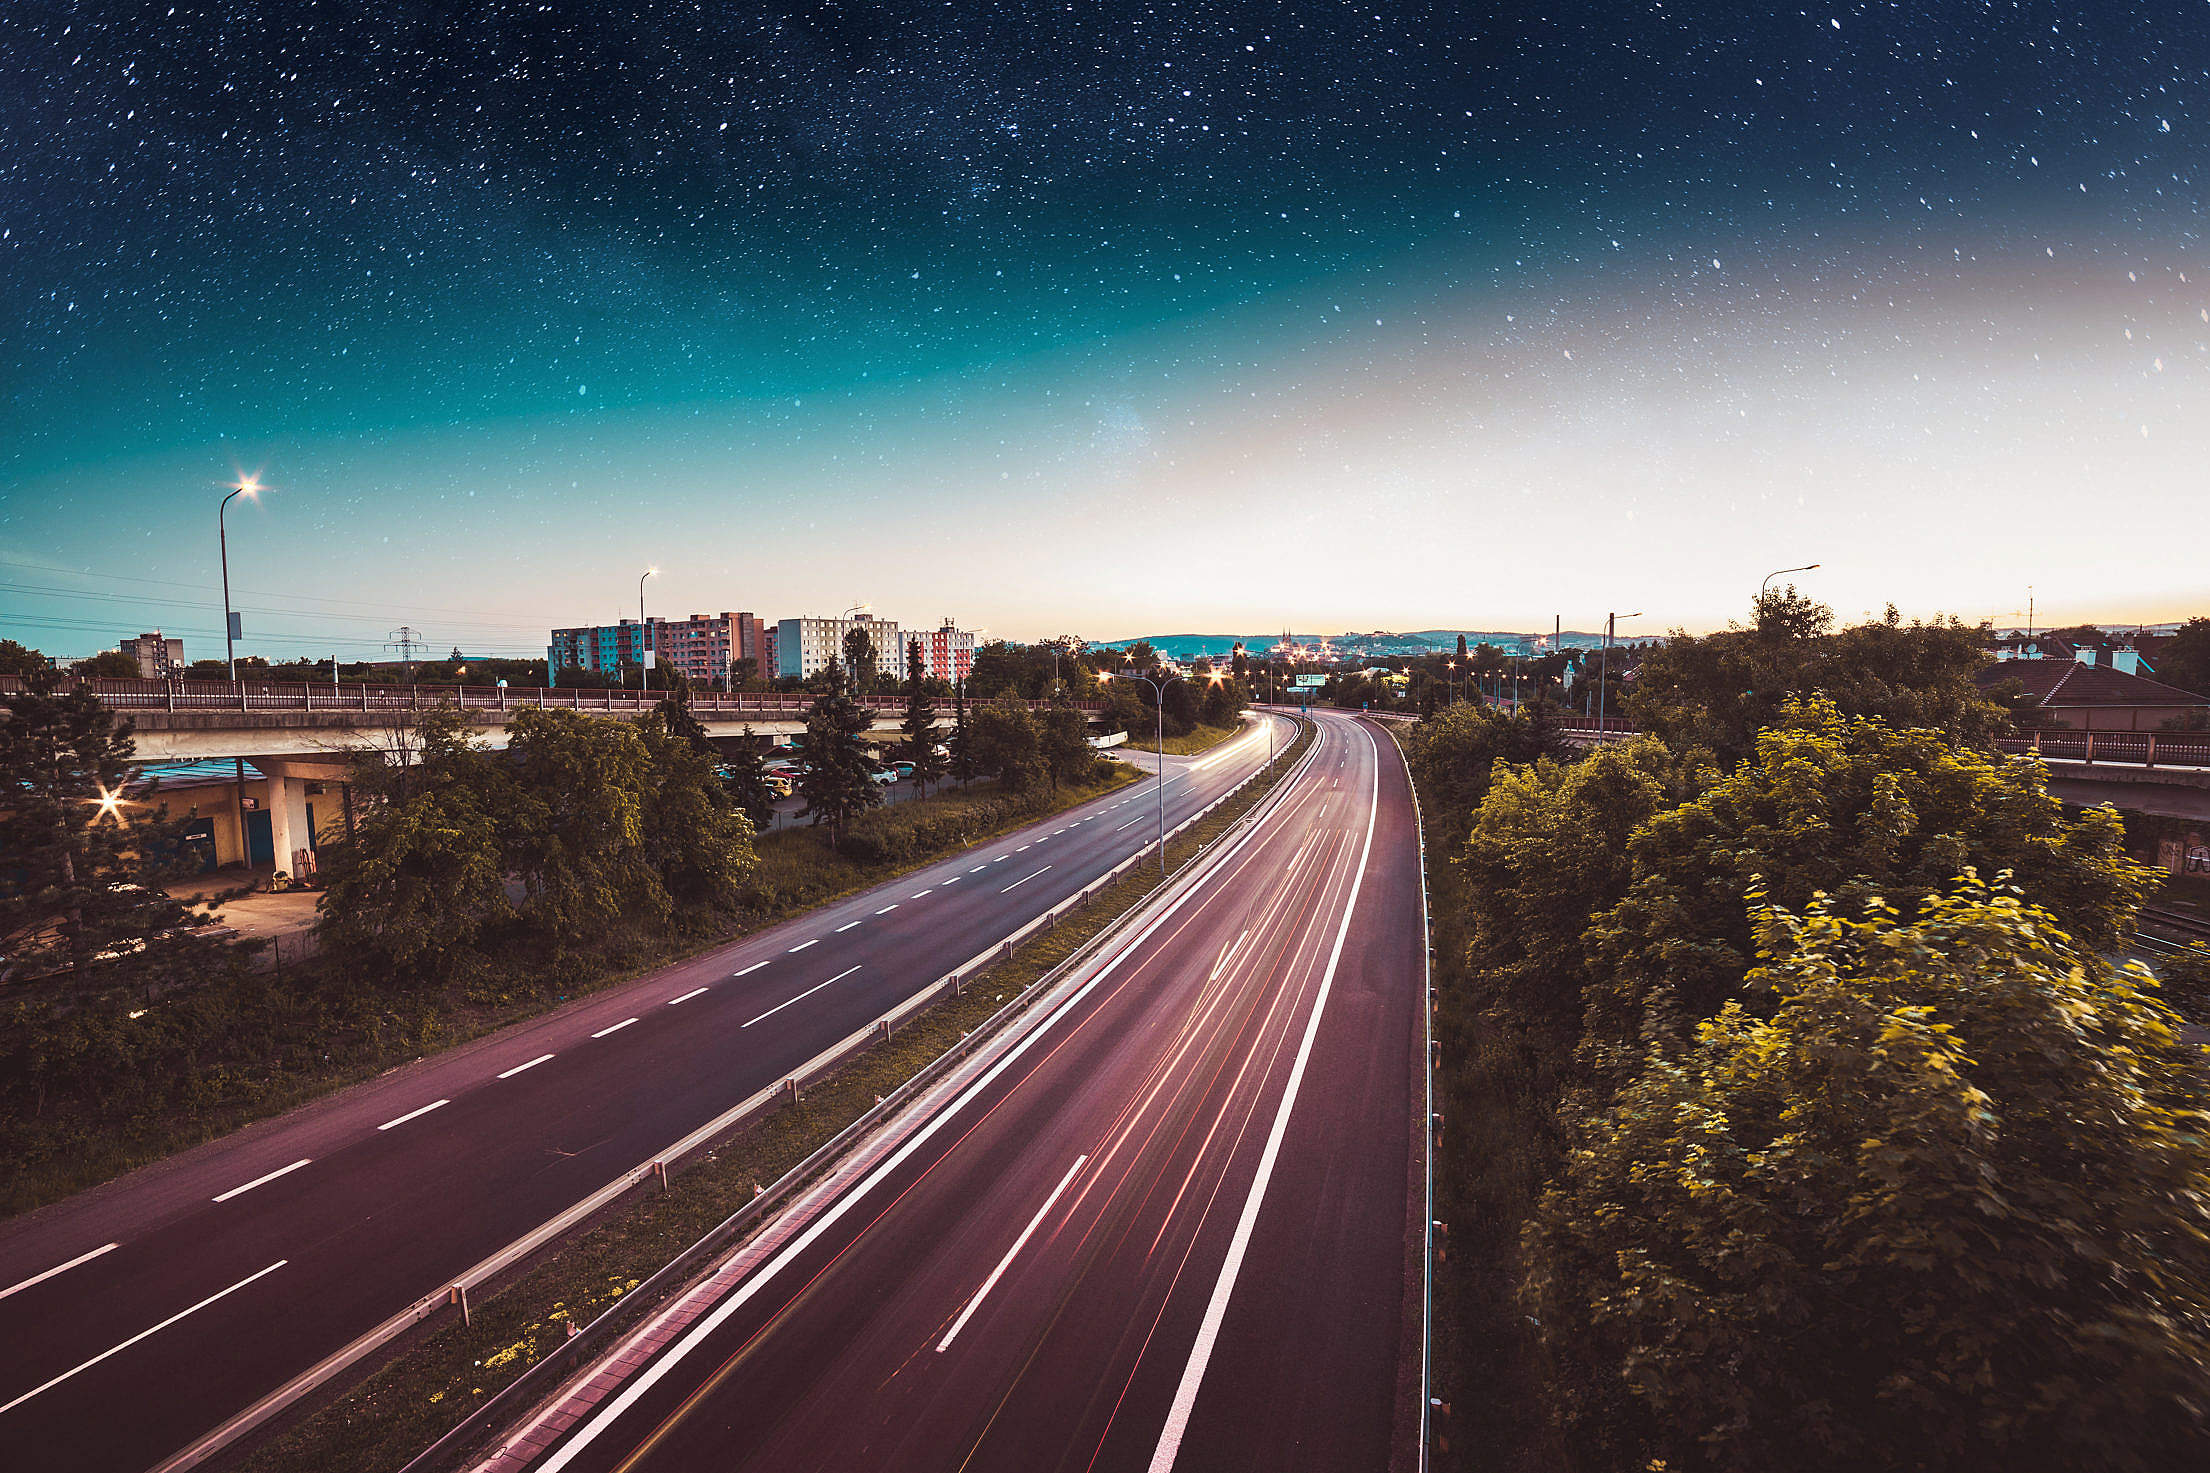 Evening Traffic in the City with Star Sky Free Stock Photo